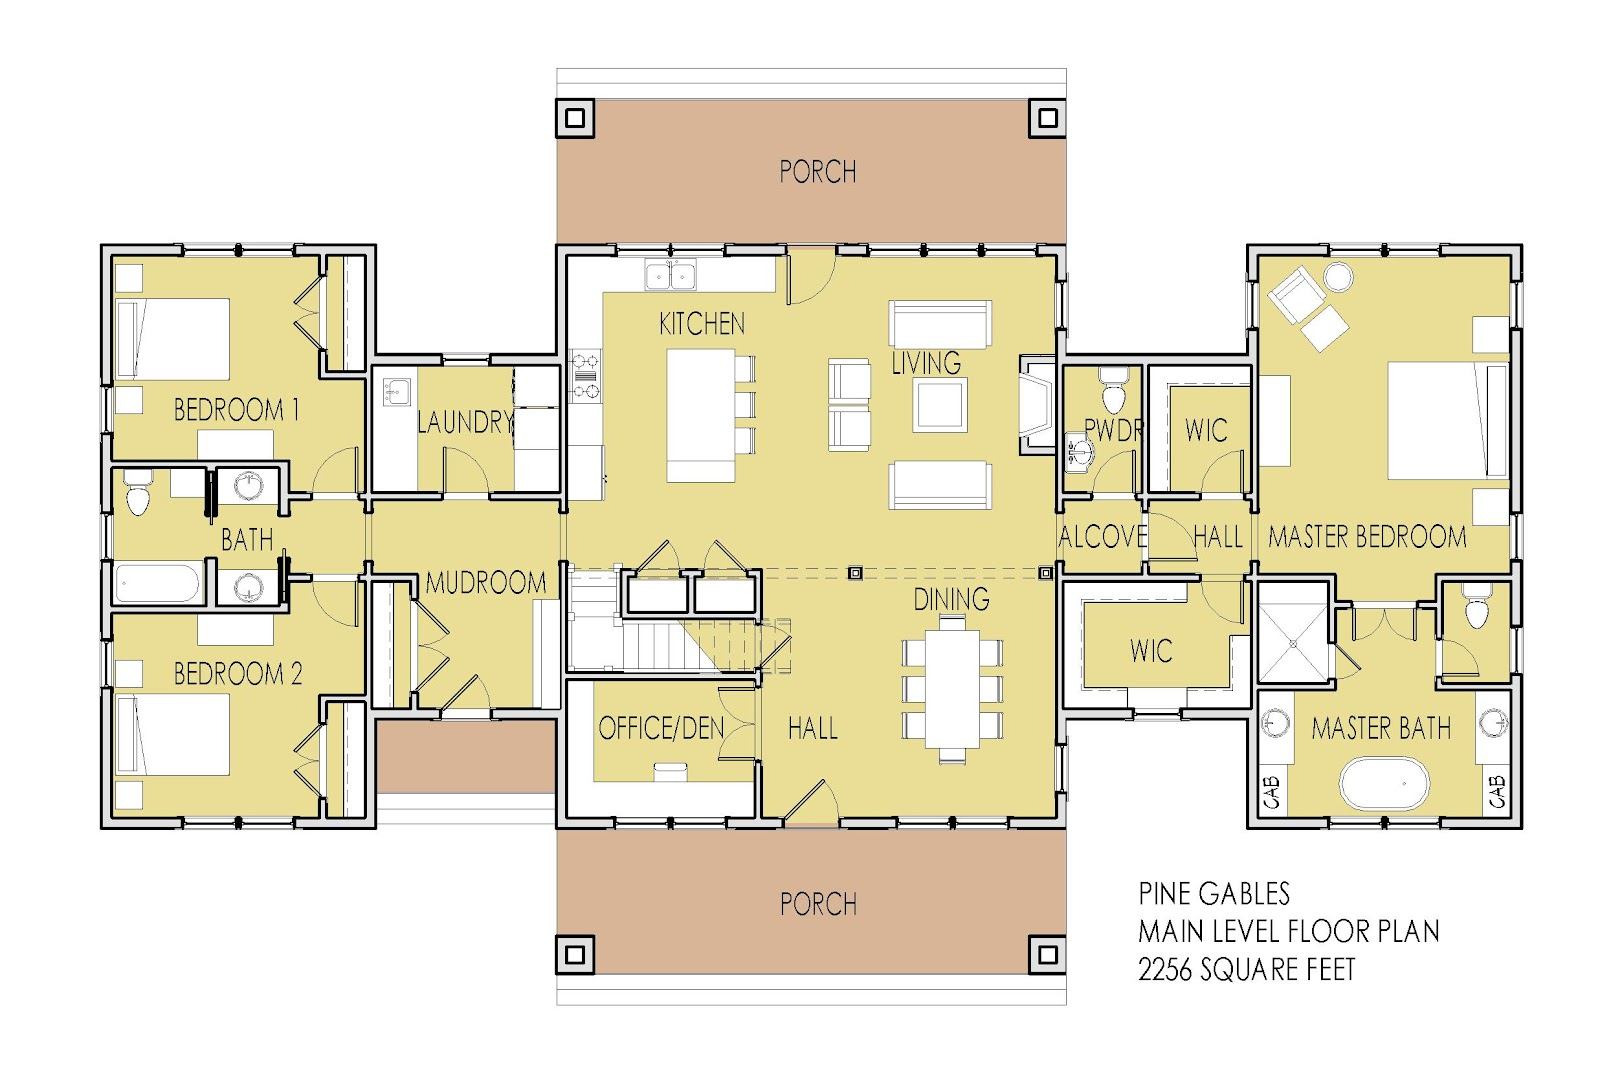 simply elegant home designs blog september 2012 two master bedrooms house plans find house plans